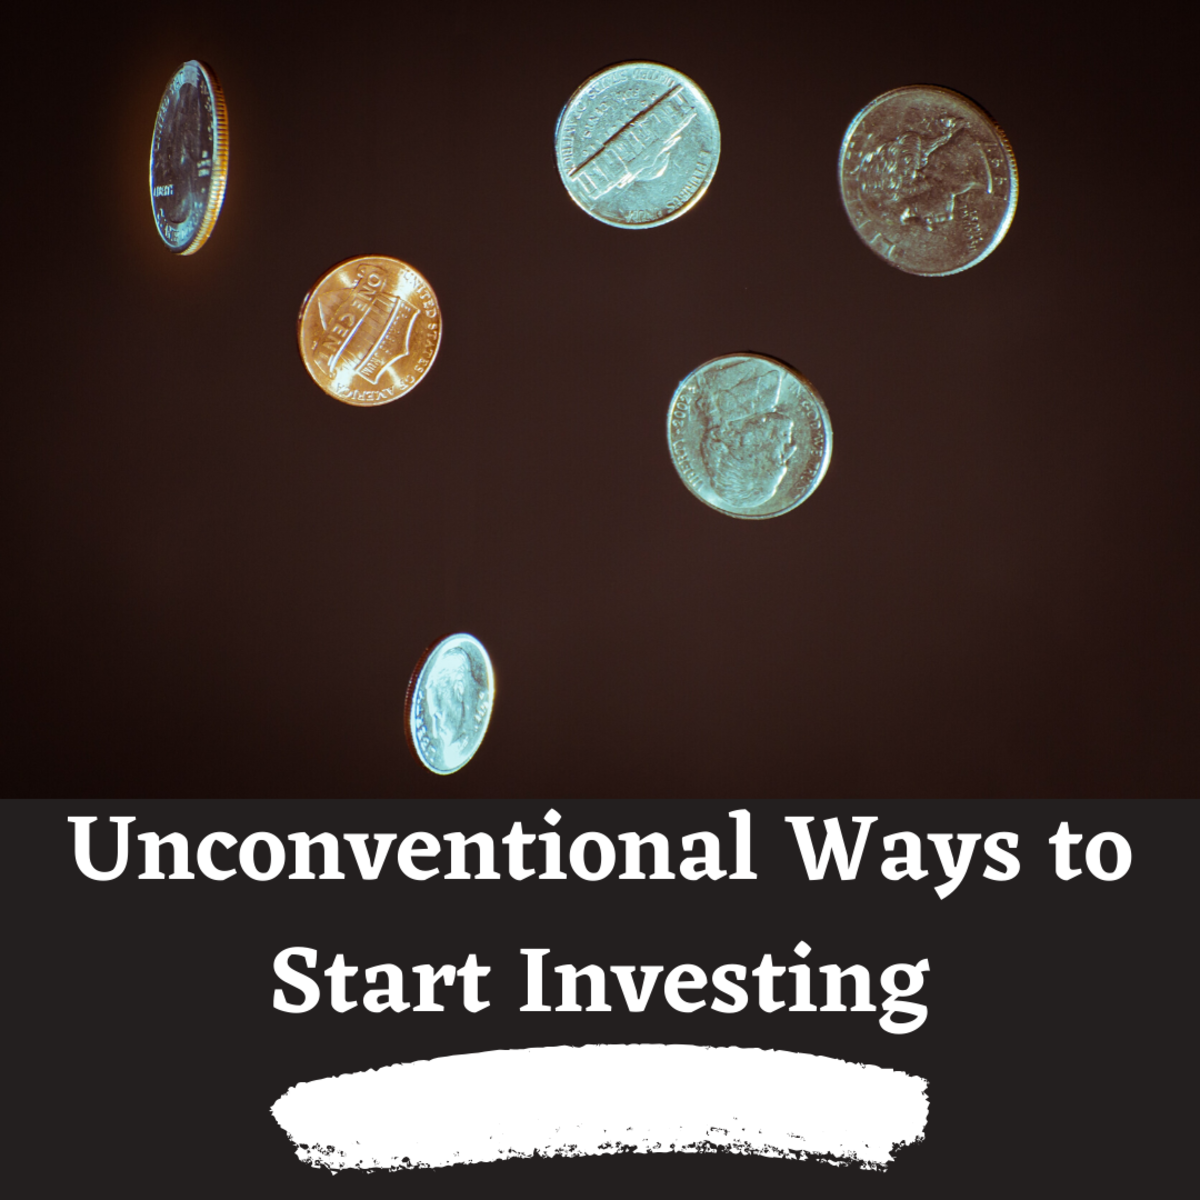 Top 3 Unconventional Ways to Start Investing